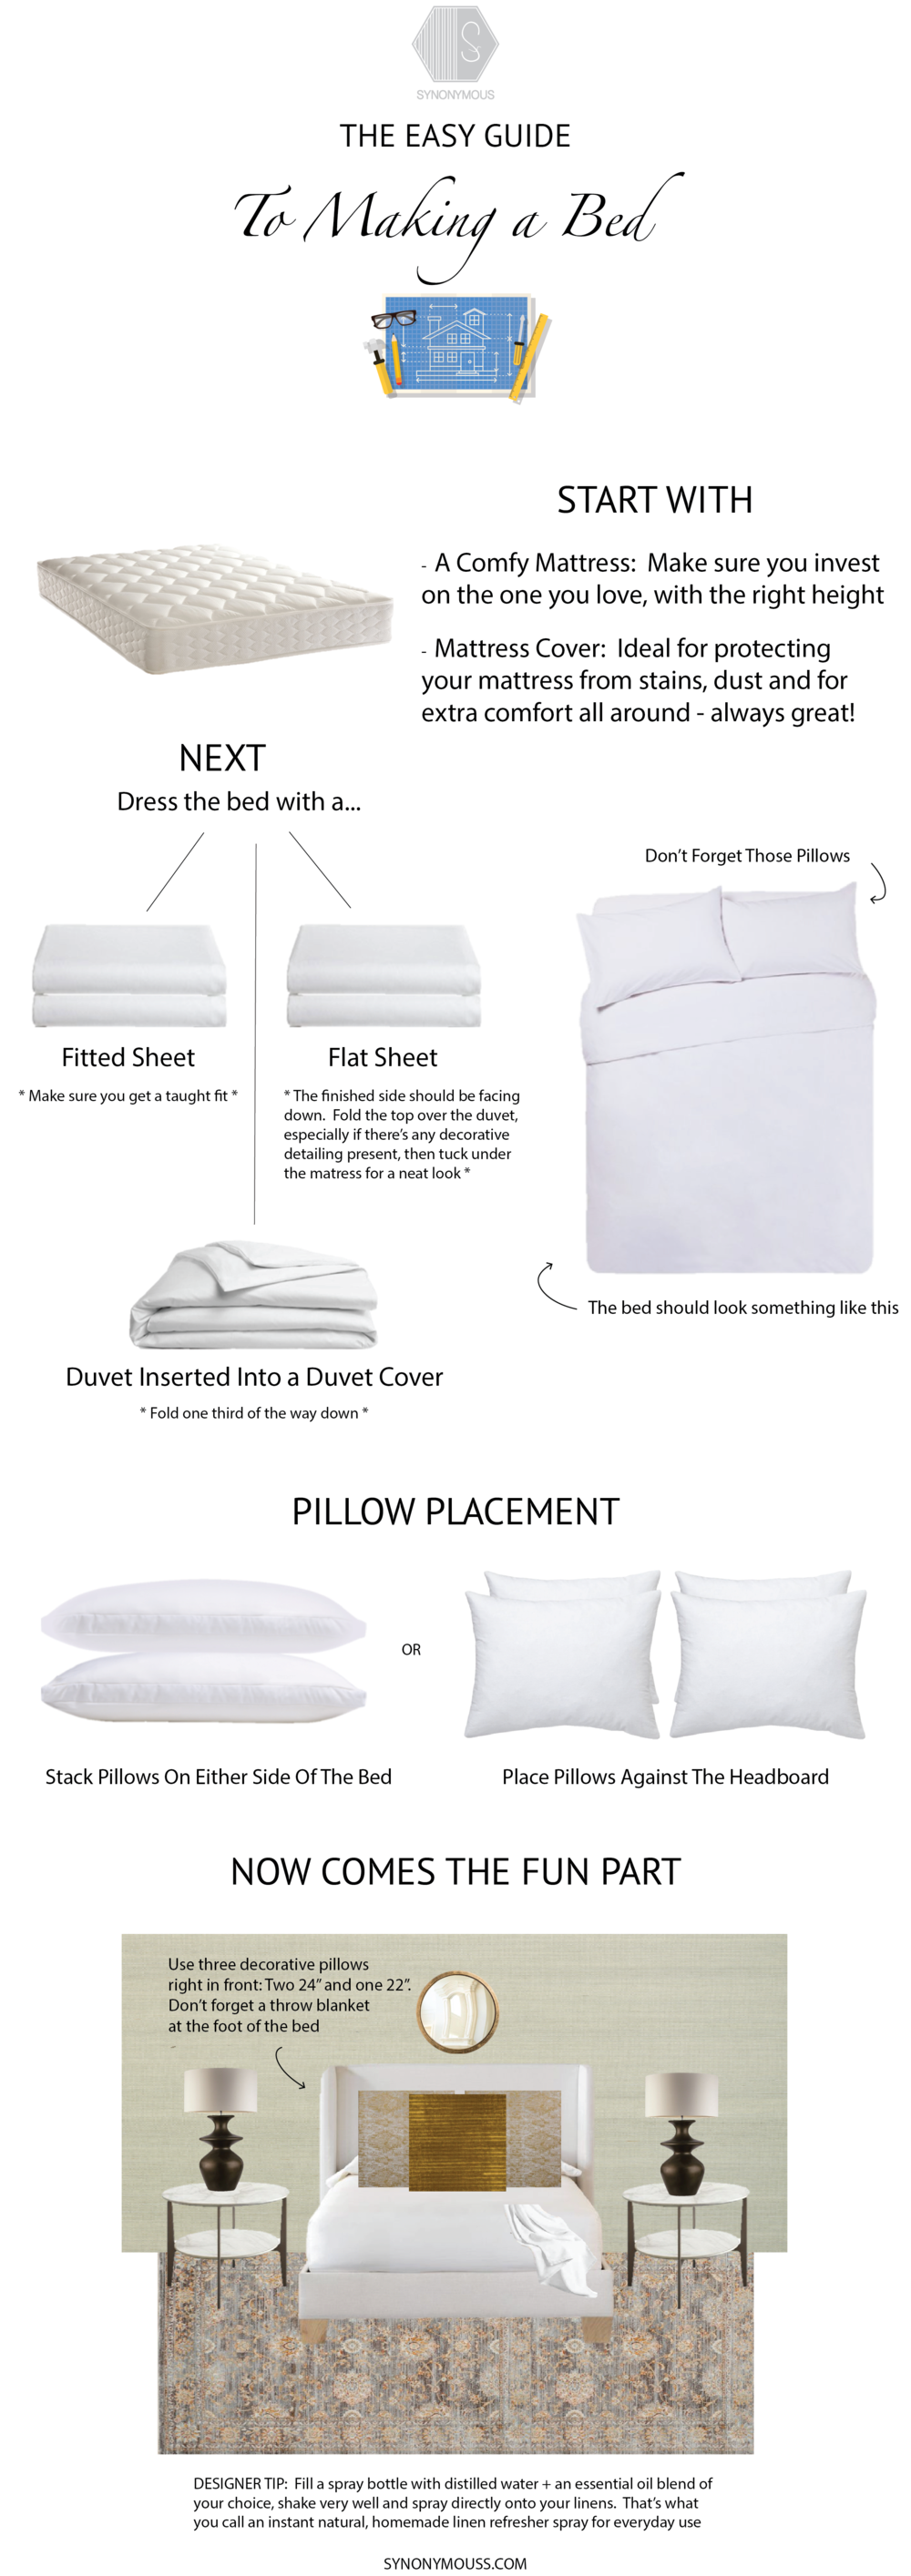 How To Make A Bed - The Easy Guide To Making A Bed - SYNONYMOUS